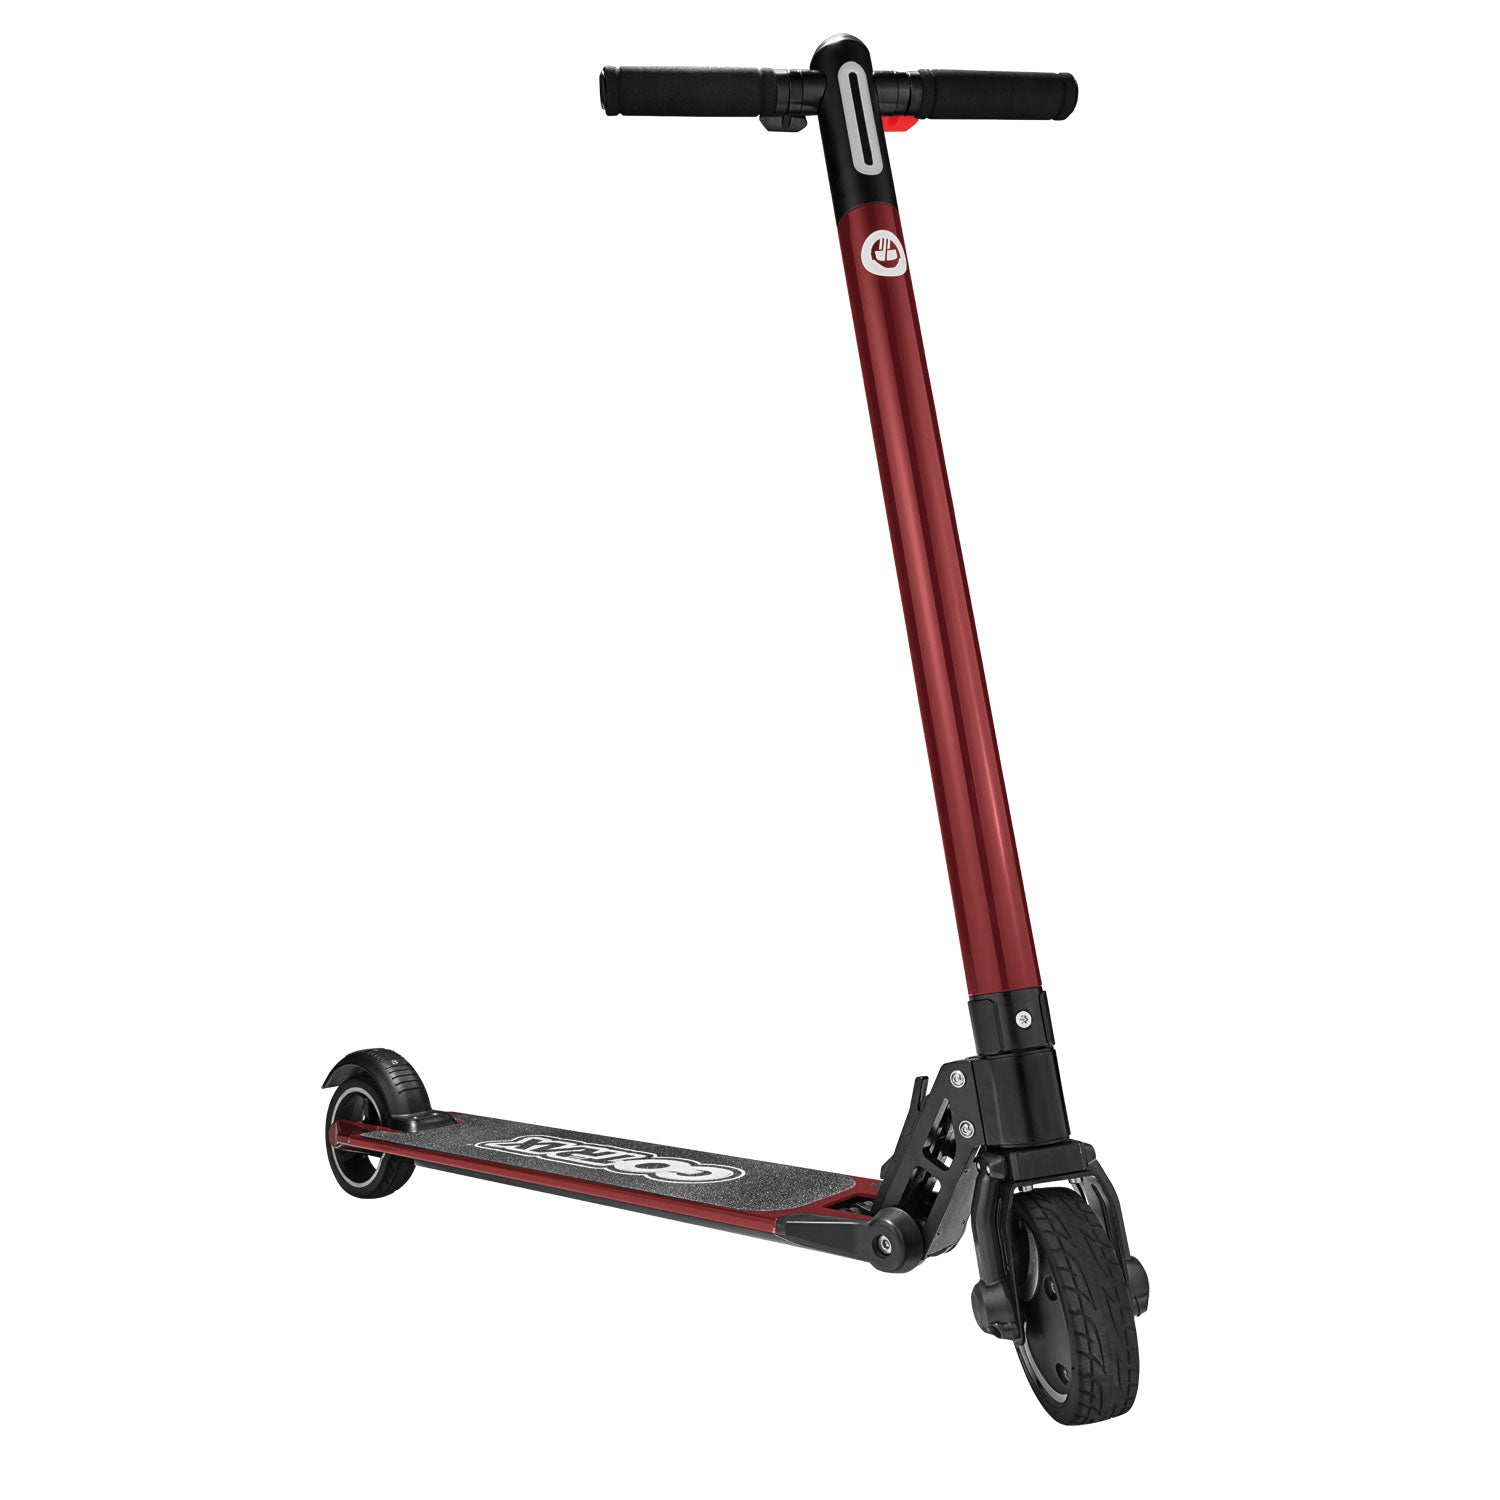 Red G1 Folding electric scooter